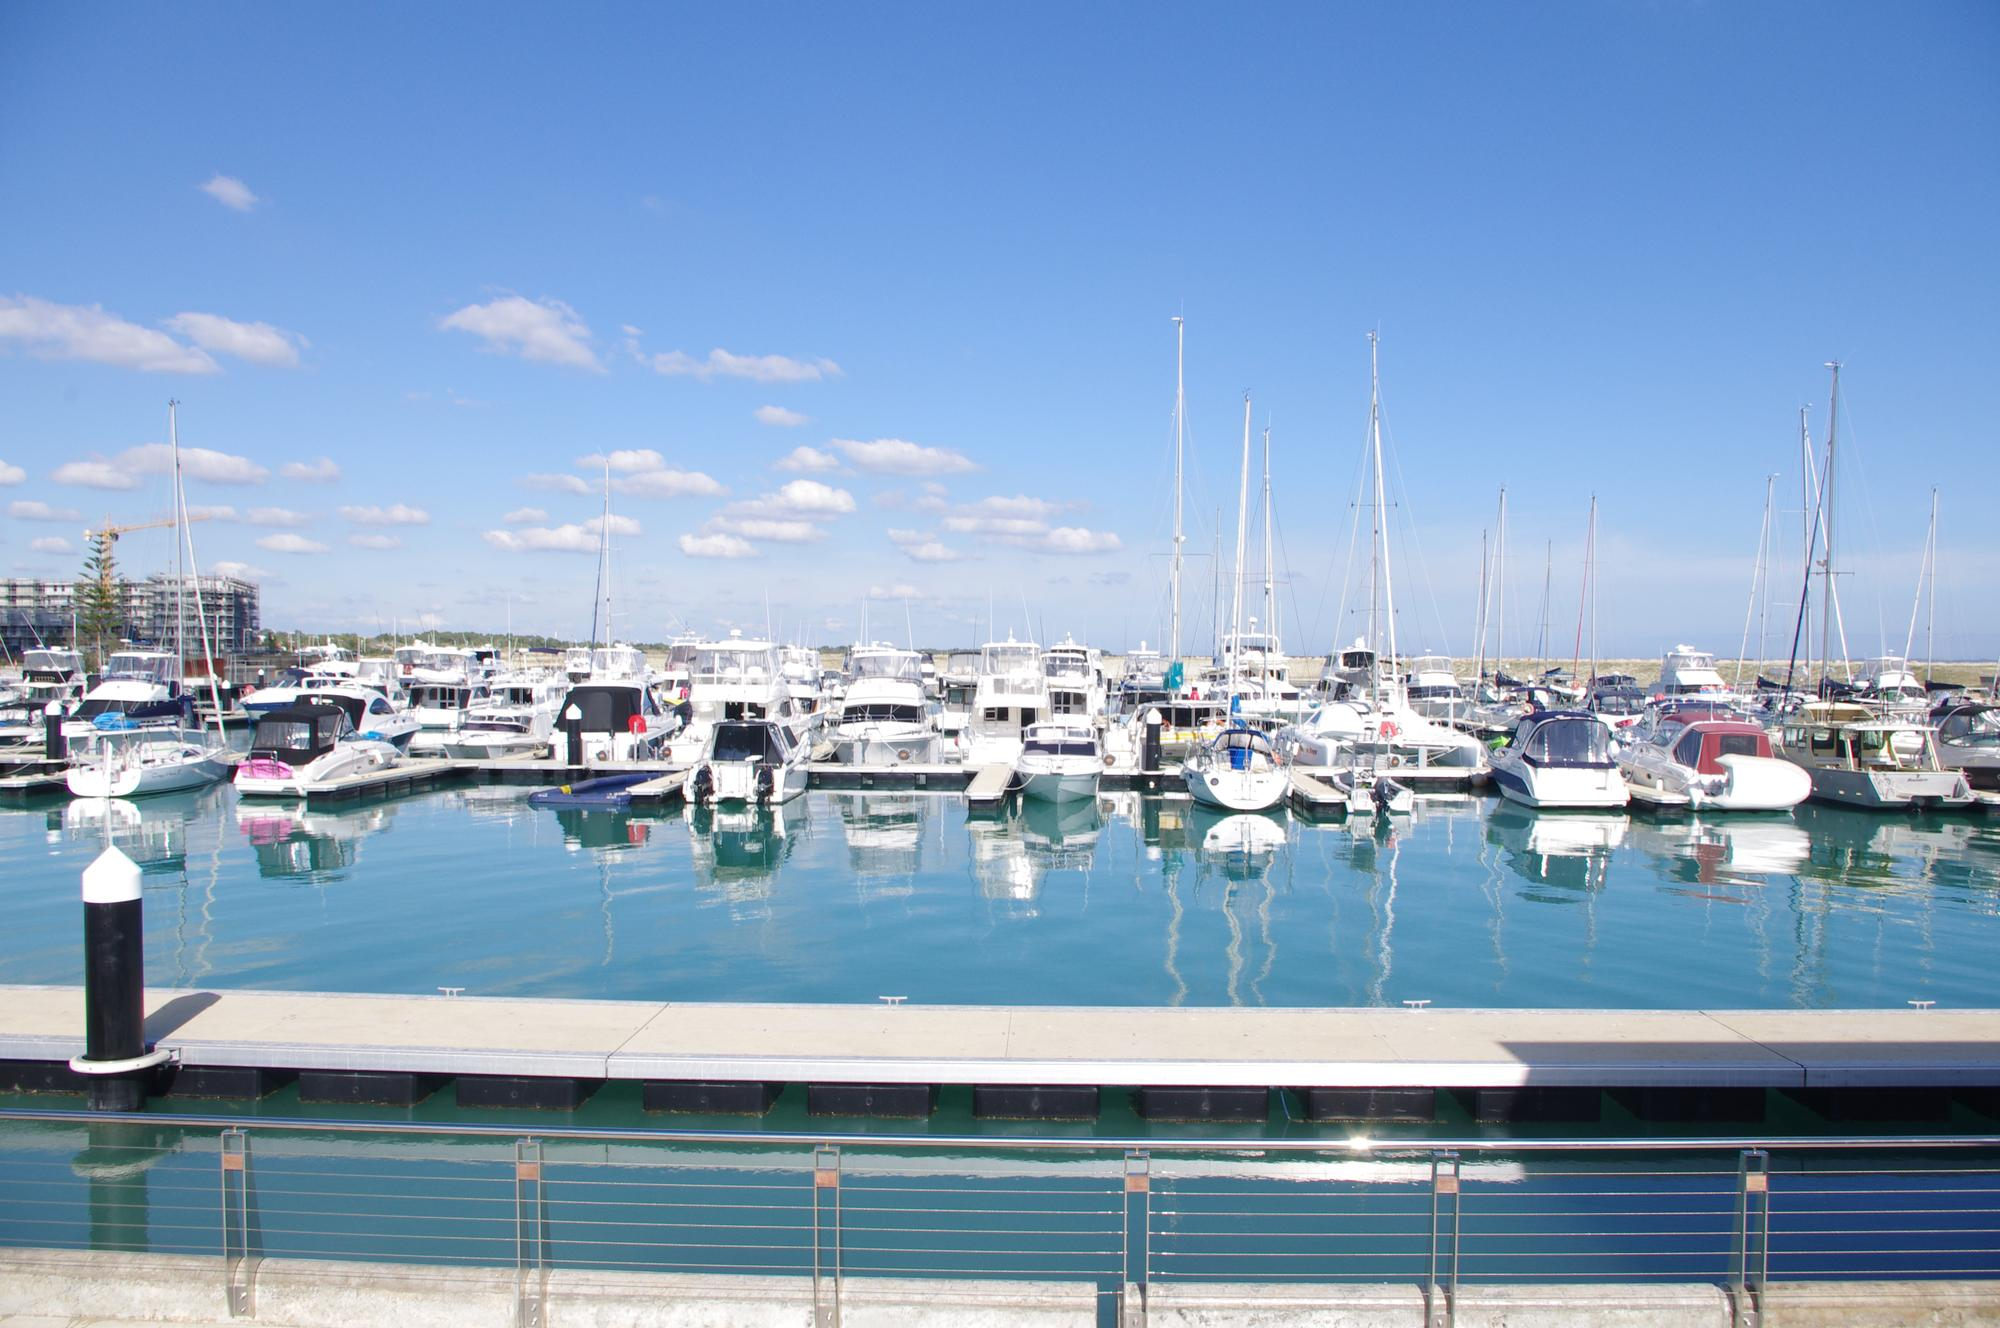 Port Coogee is a vibrant coastal community with a world-class marina